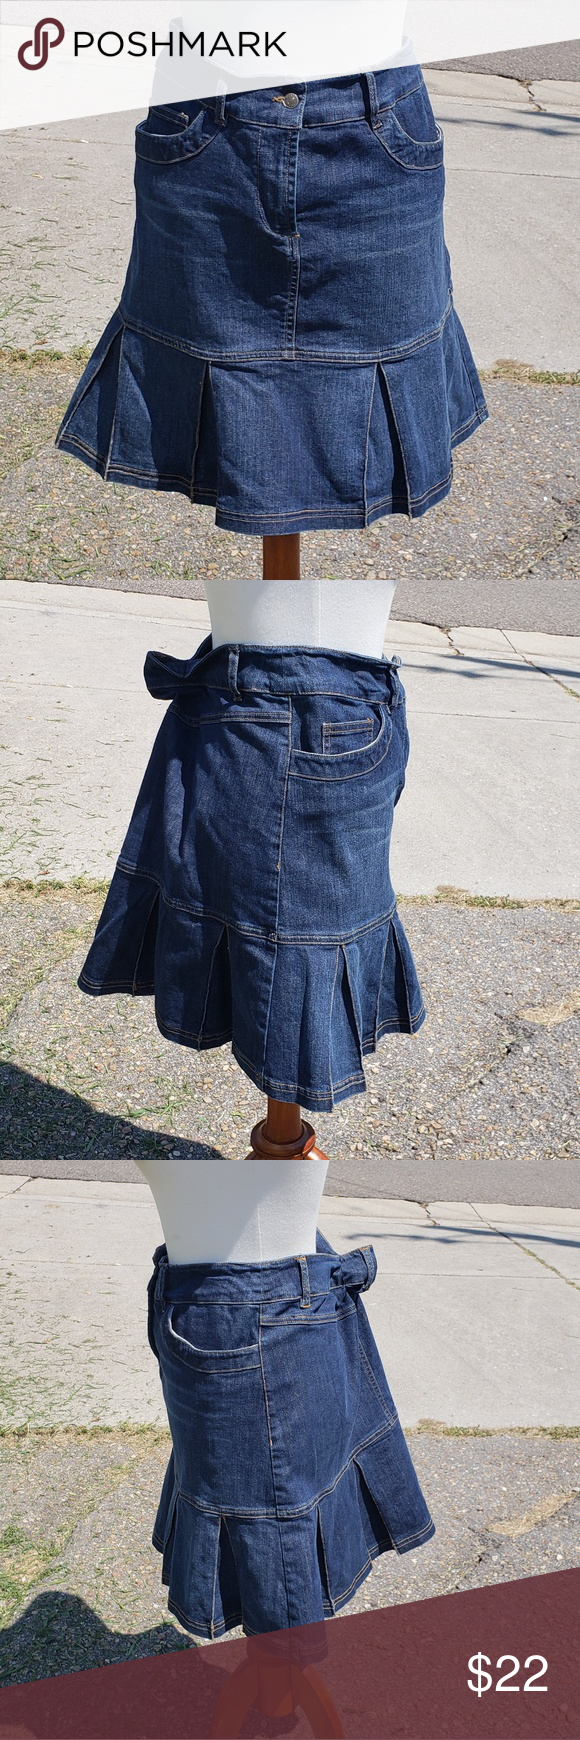 Harold's Blue Jean Mini Tennis/Cheerleader Skirt Harold's blue jean skirt with tennis/cheerleading skirt pleats. Two pockets at the front waist. Zipper and button fly. Has belt loops. 98.2% cotton, 1.8% elastic.  Measurements are approximate and in inches while laying flat. Length-18, Waist-16 Harold's Skirts Mini #18inchcheerleaderclothes Harold's Blue Jean Mini Tennis/Cheerleader Skirt Harold's blue jean skirt with tennis/cheerleading skirt pleats. Two pockets at the front waist. Zipper and bu #18inchcheerleaderclothes